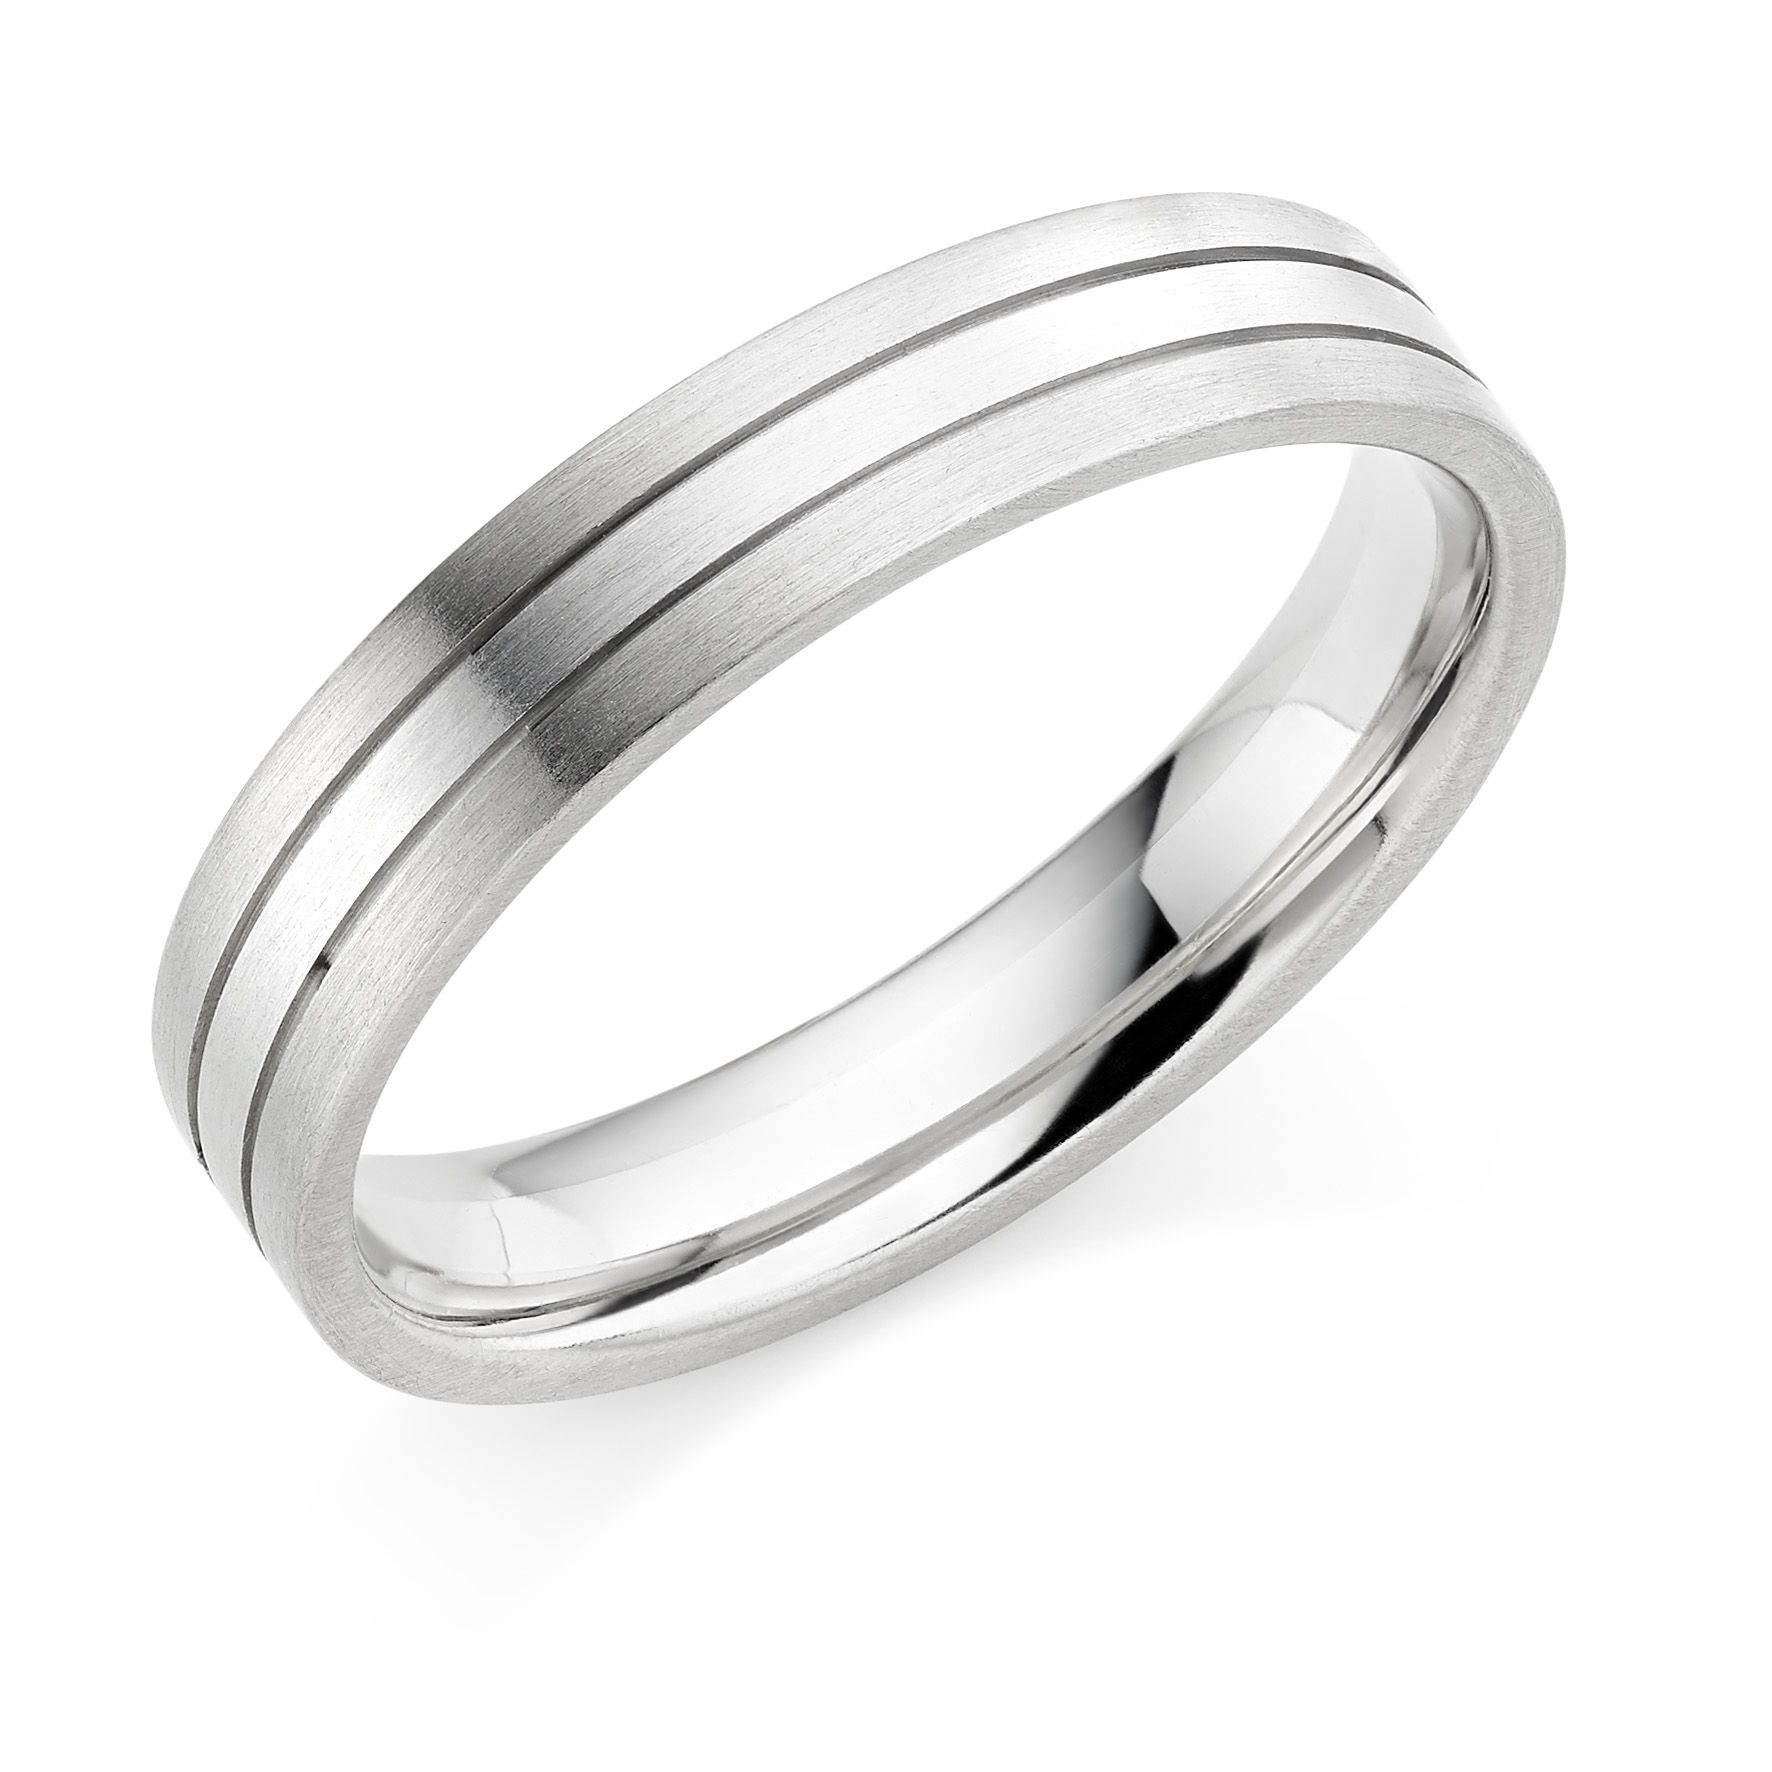 Our Platinum 18ct white gold 45mm Mara wedding ring